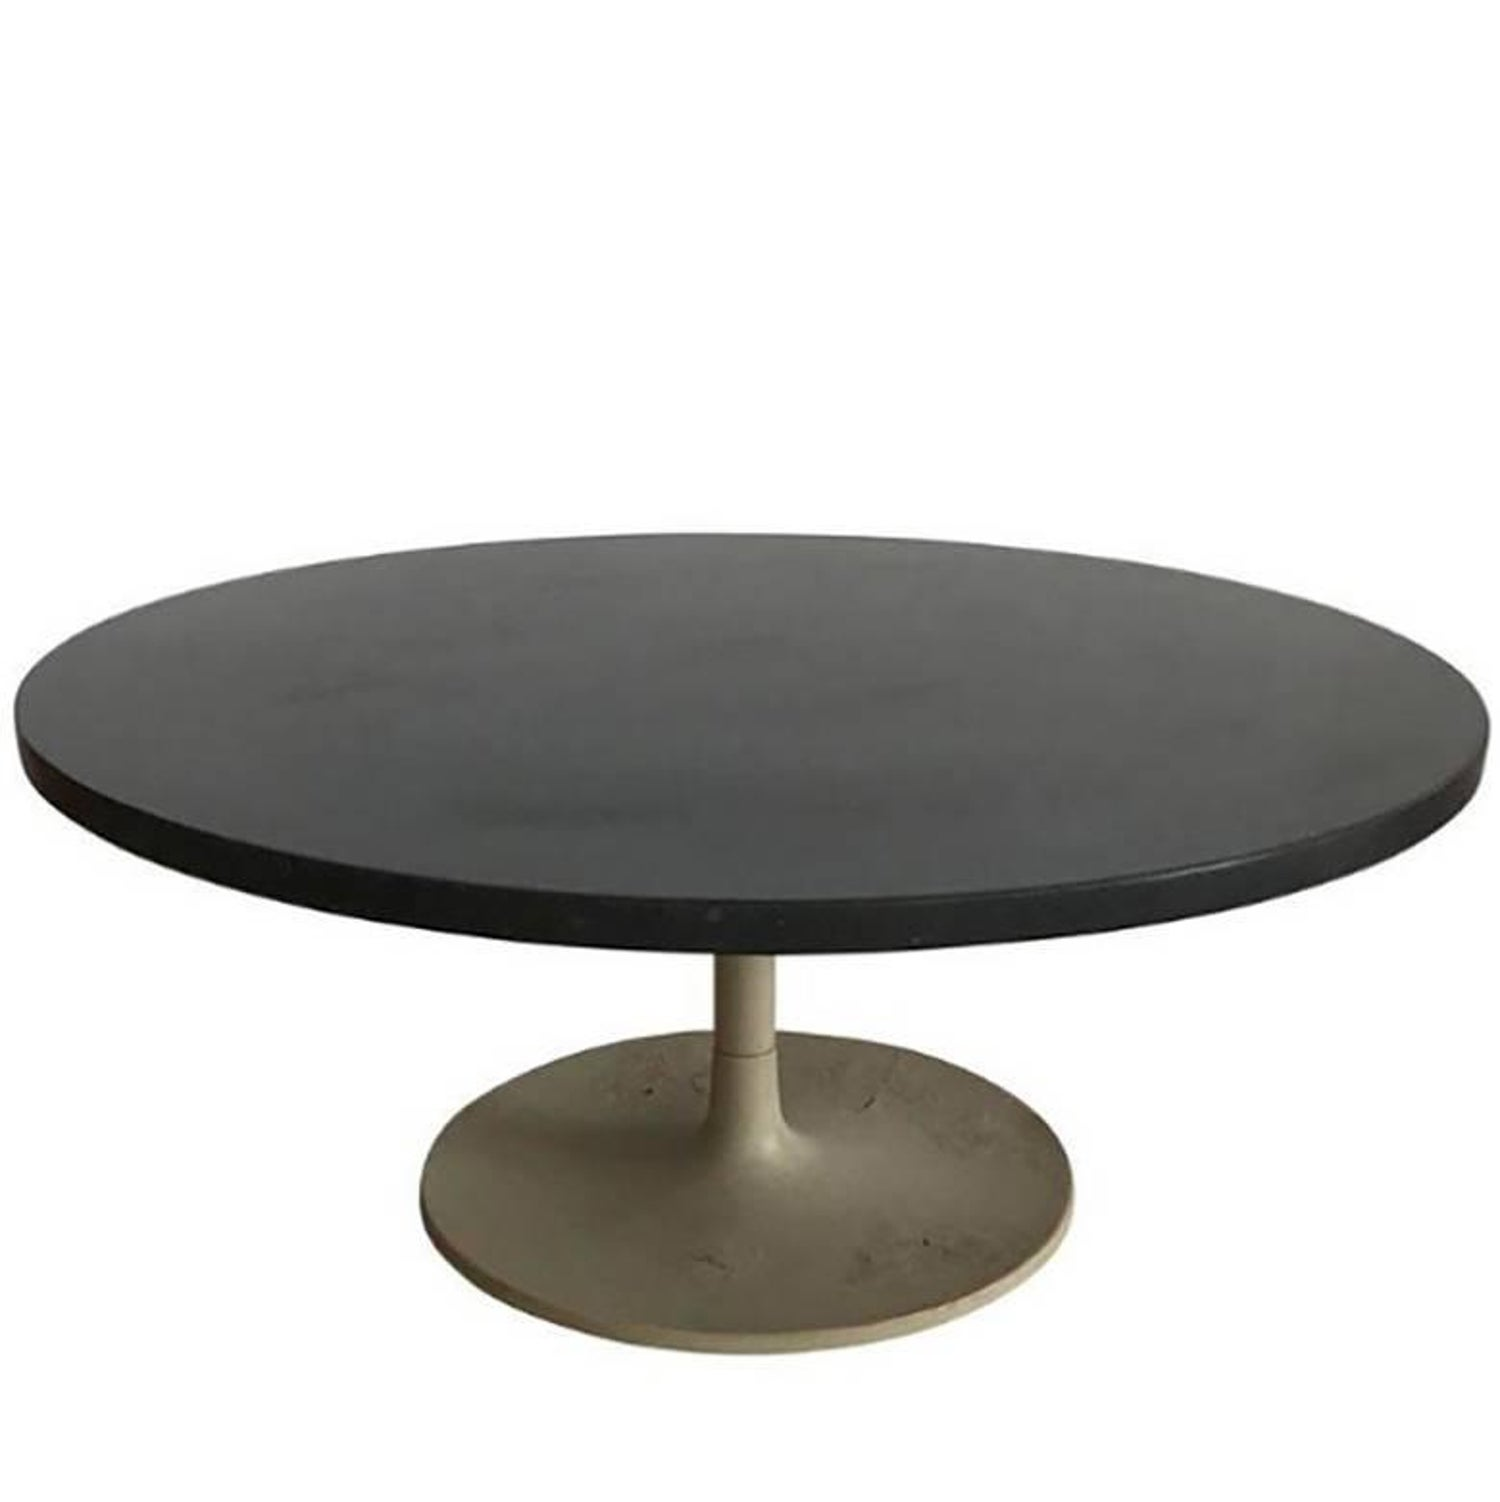 Jens risom floating bench for sale at 1stdibs - Jens Risom Slate Top Tulip Coffee Table